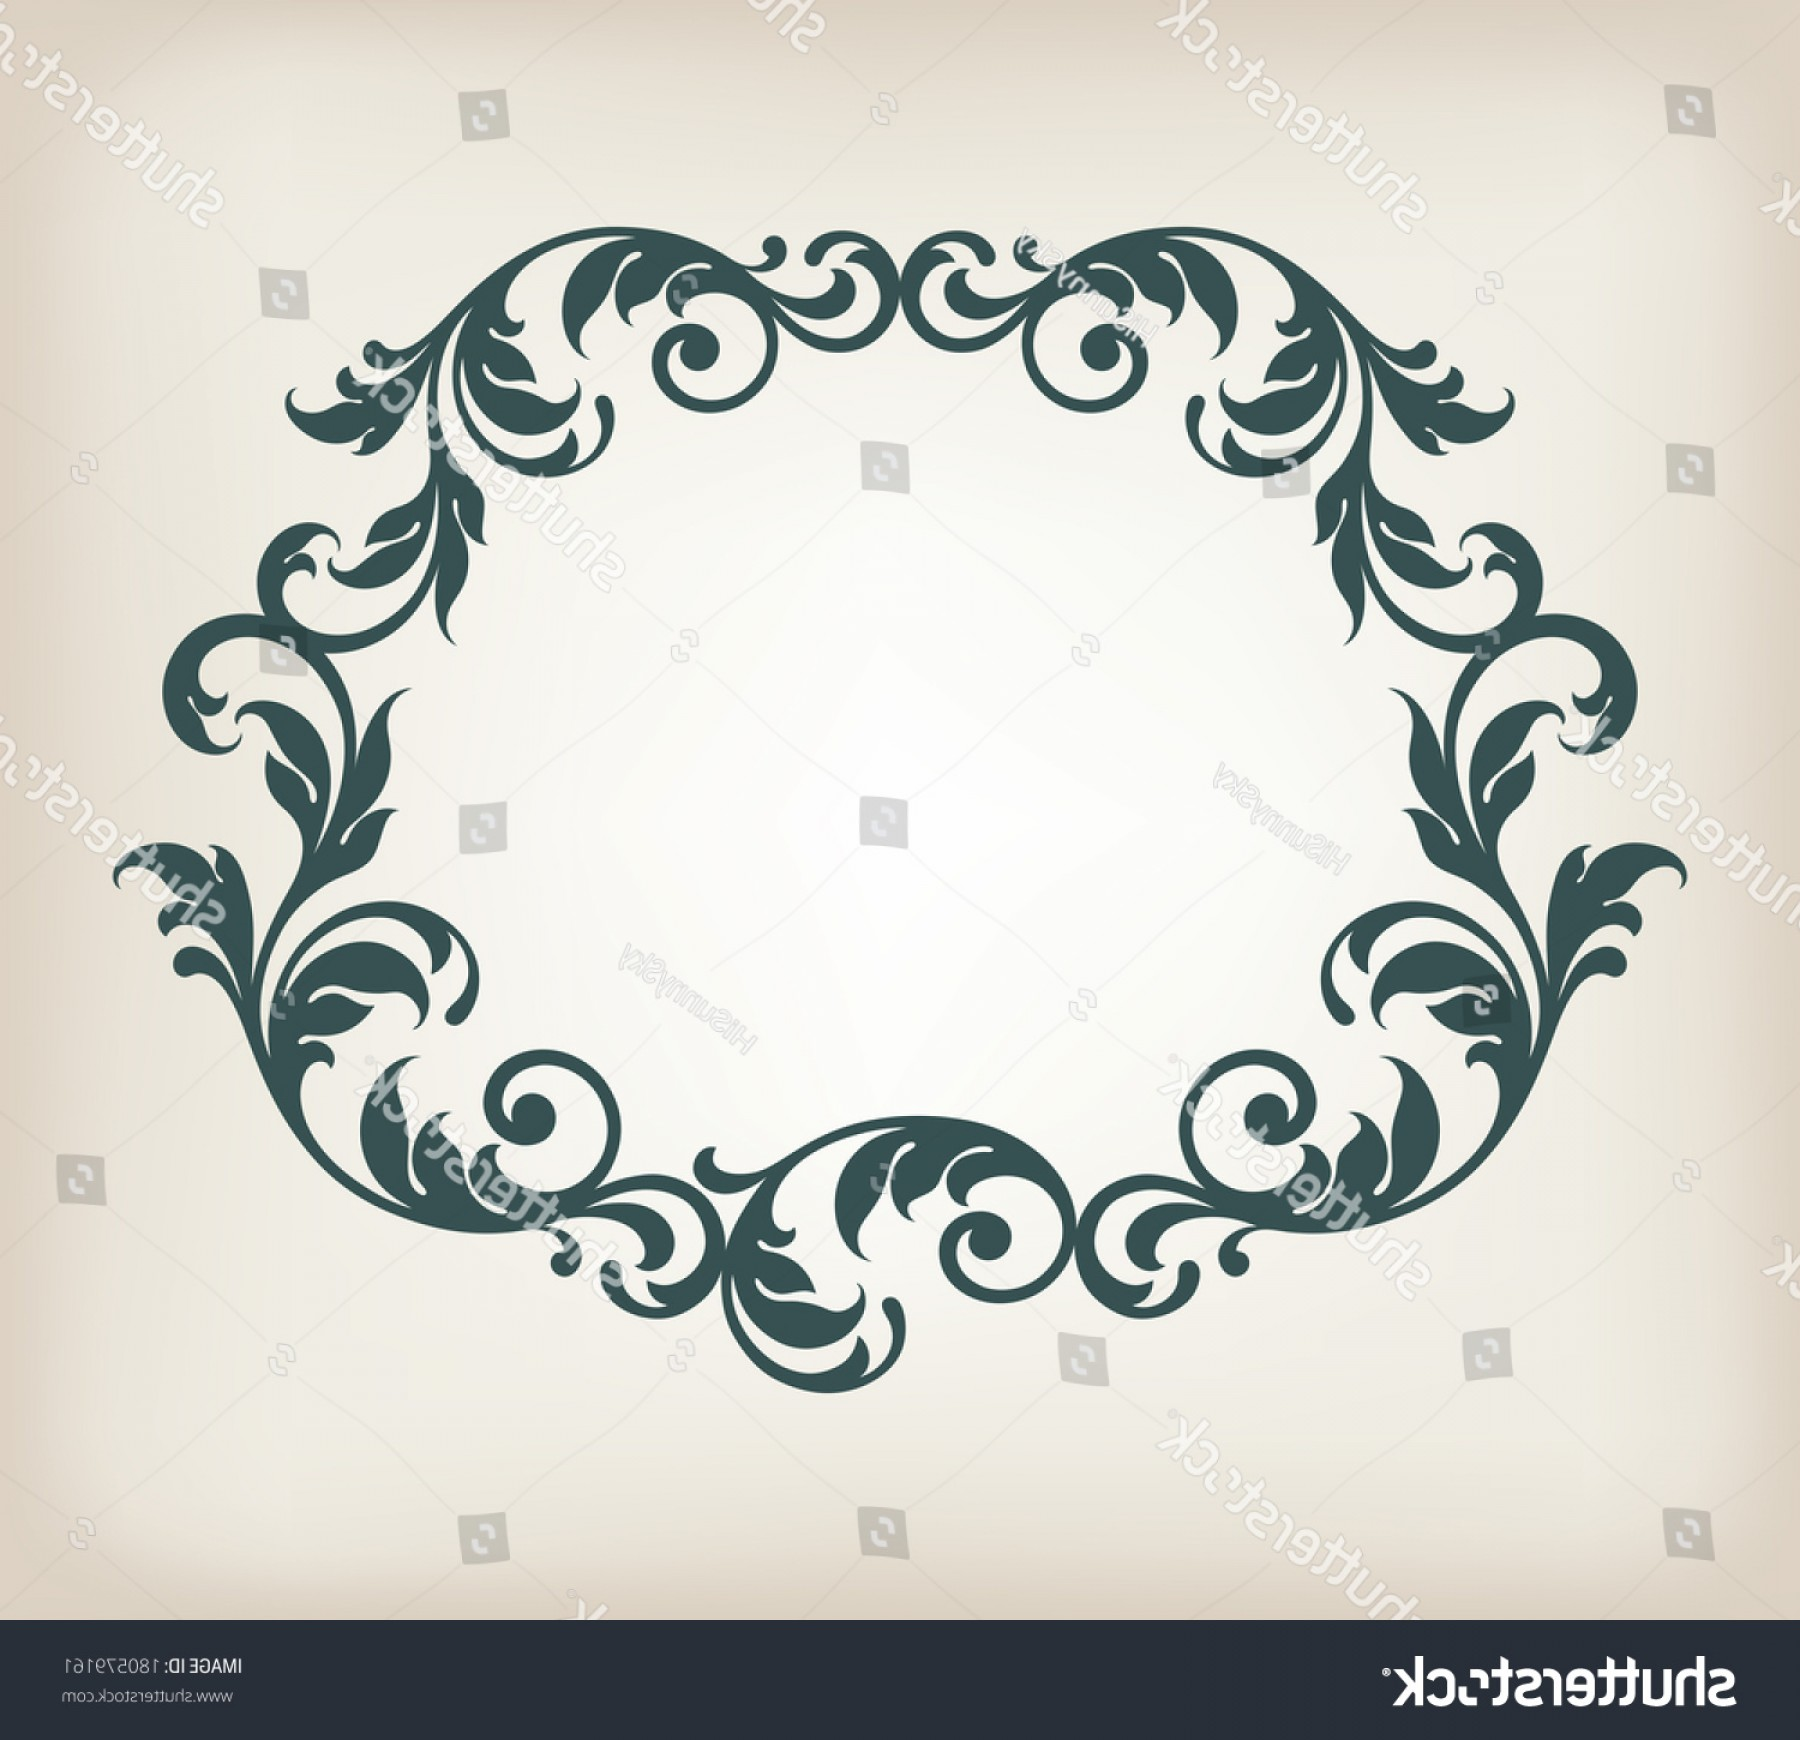 Filigree Oval Frame Vector: Vector Vintage Border Frame Filigree Retro